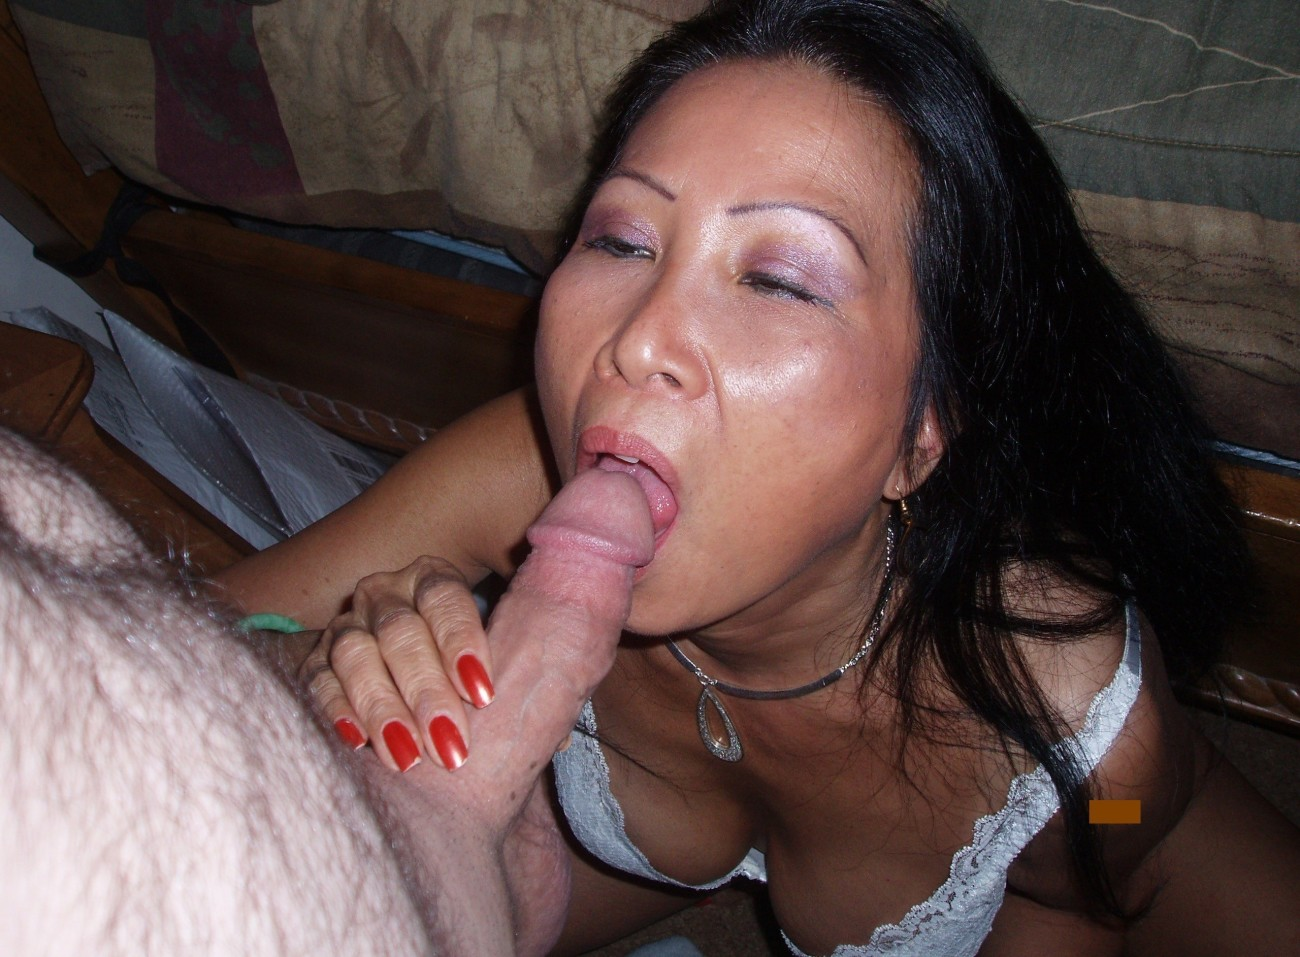 Home Porno Jpg DADDYS CHINEASE TAKEAWAY!